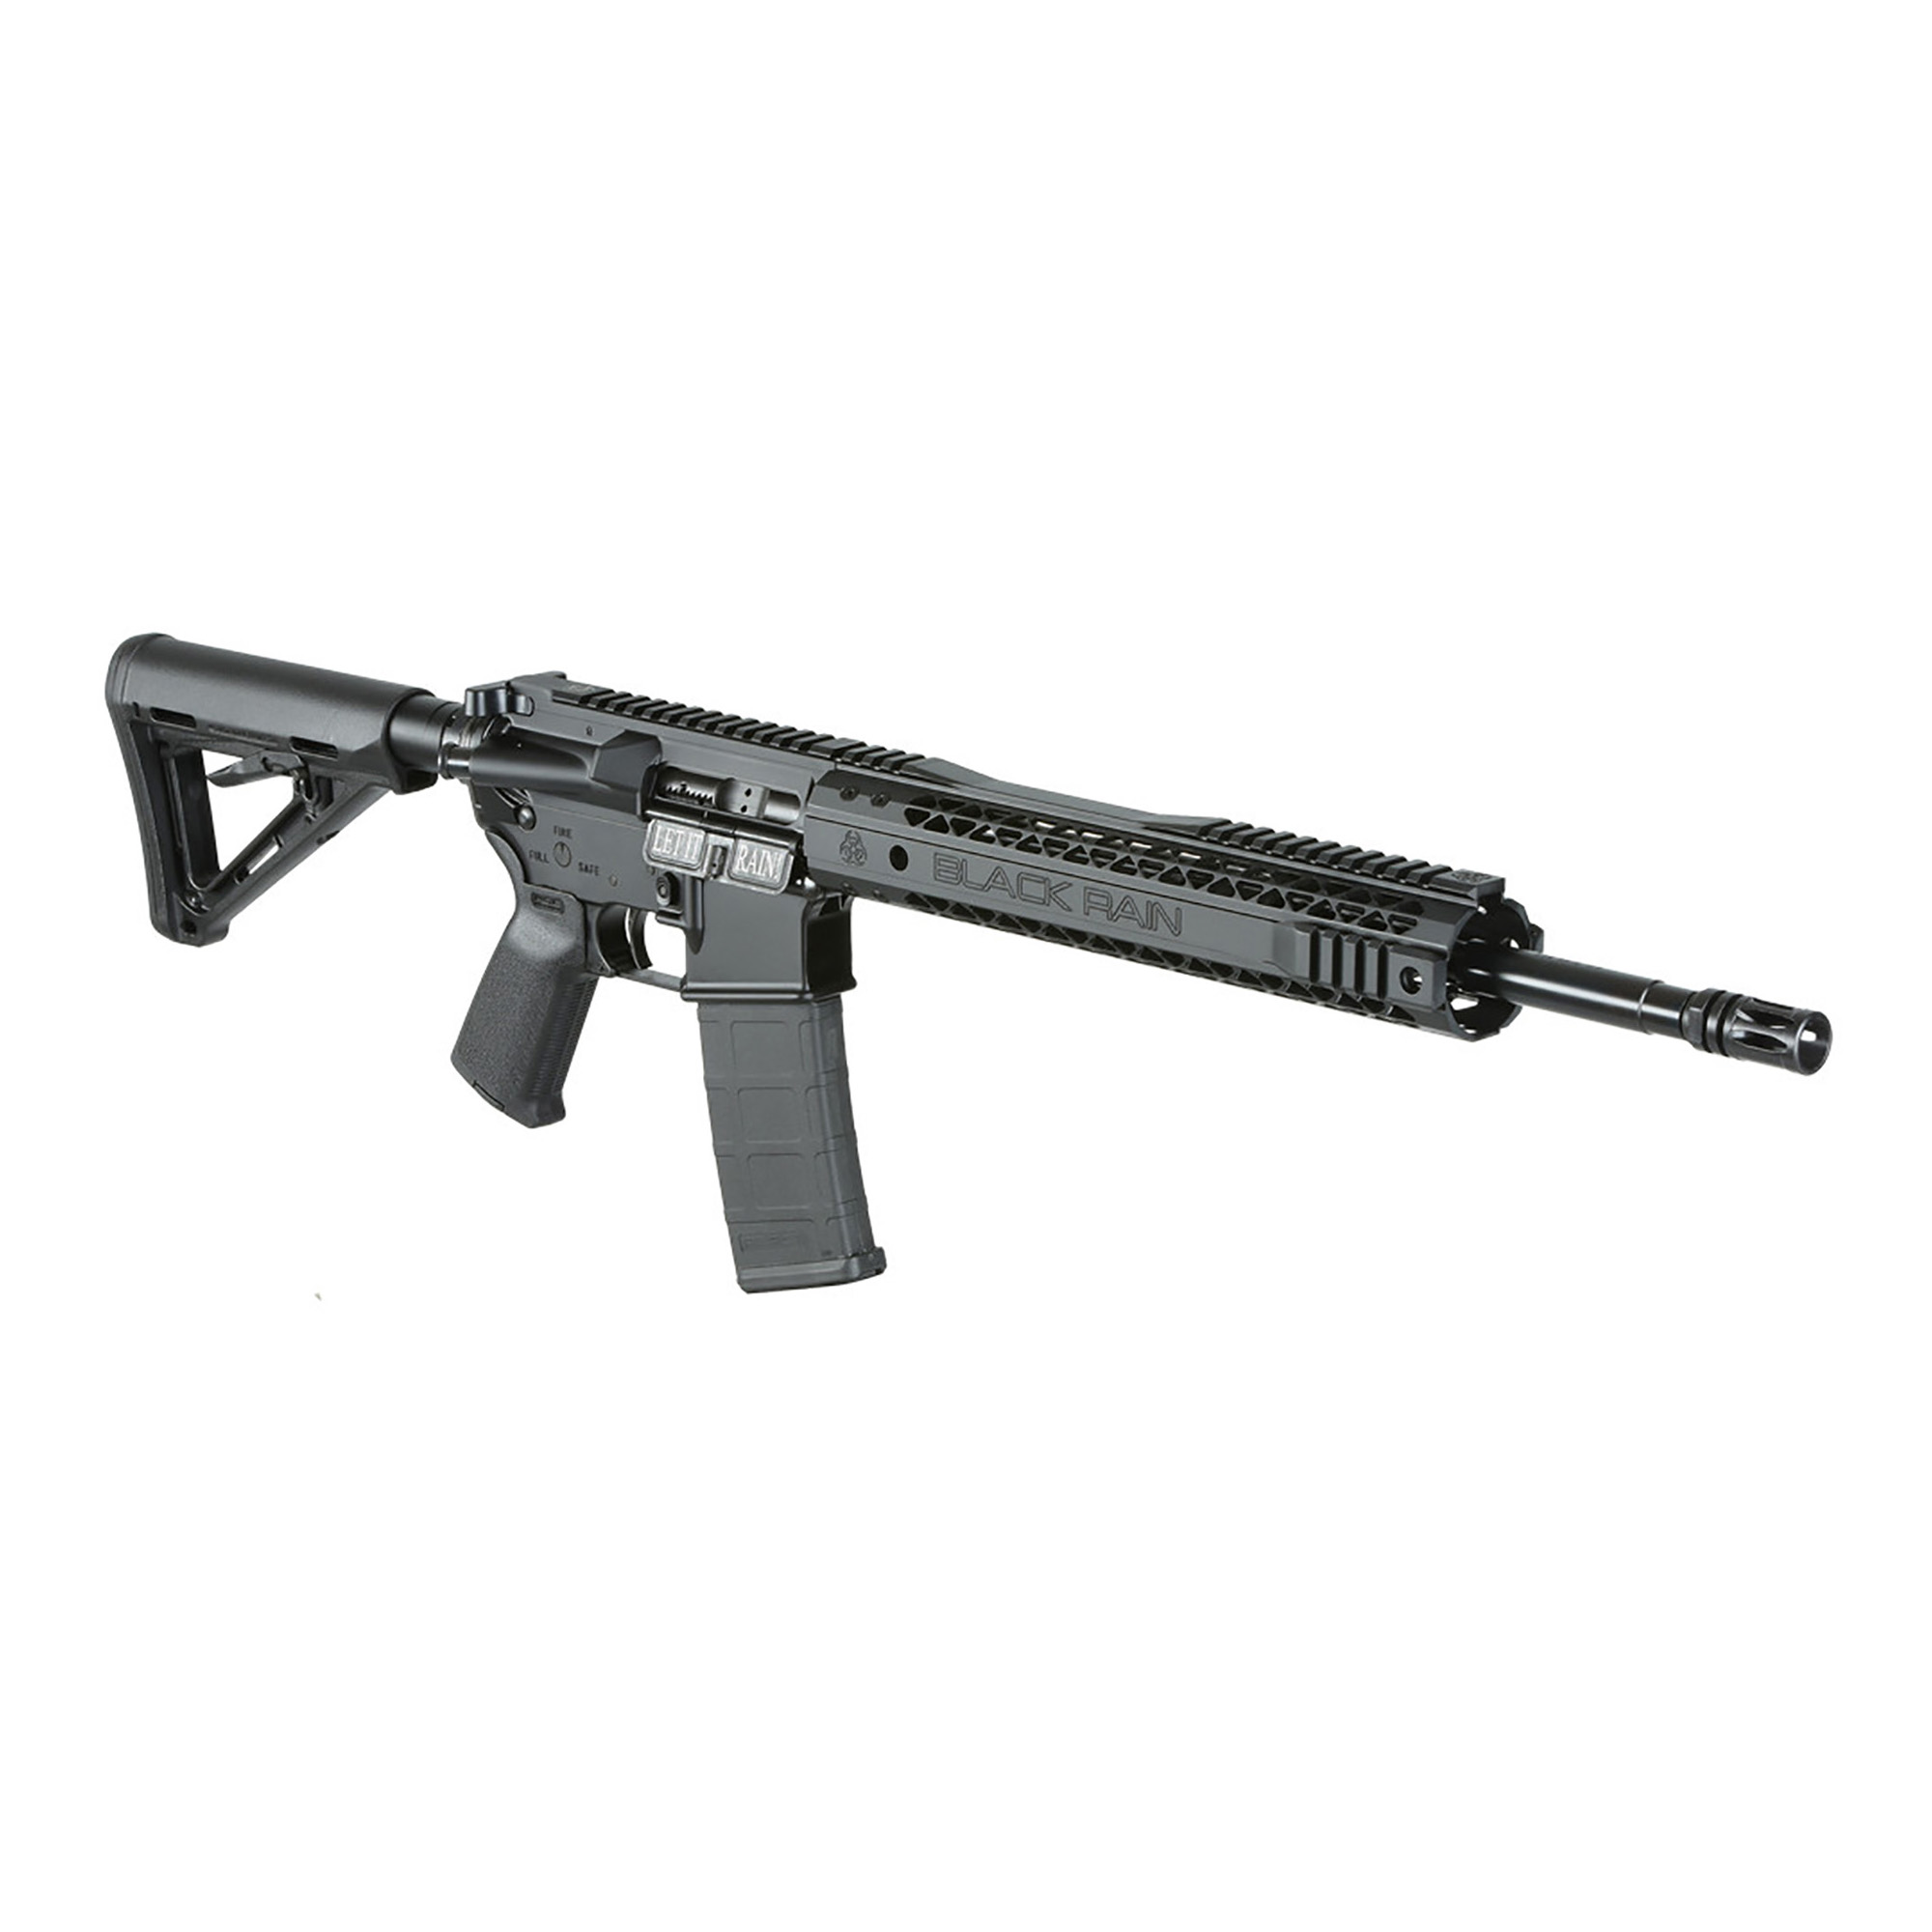 "A Hybrid of the Spec15 Carbine Combined with a Billet Aluminum Lower Receiver. Features a Magpul MOE grip and buttstock and a 16"" M4 Profile 4150 Chromoly Barrel."